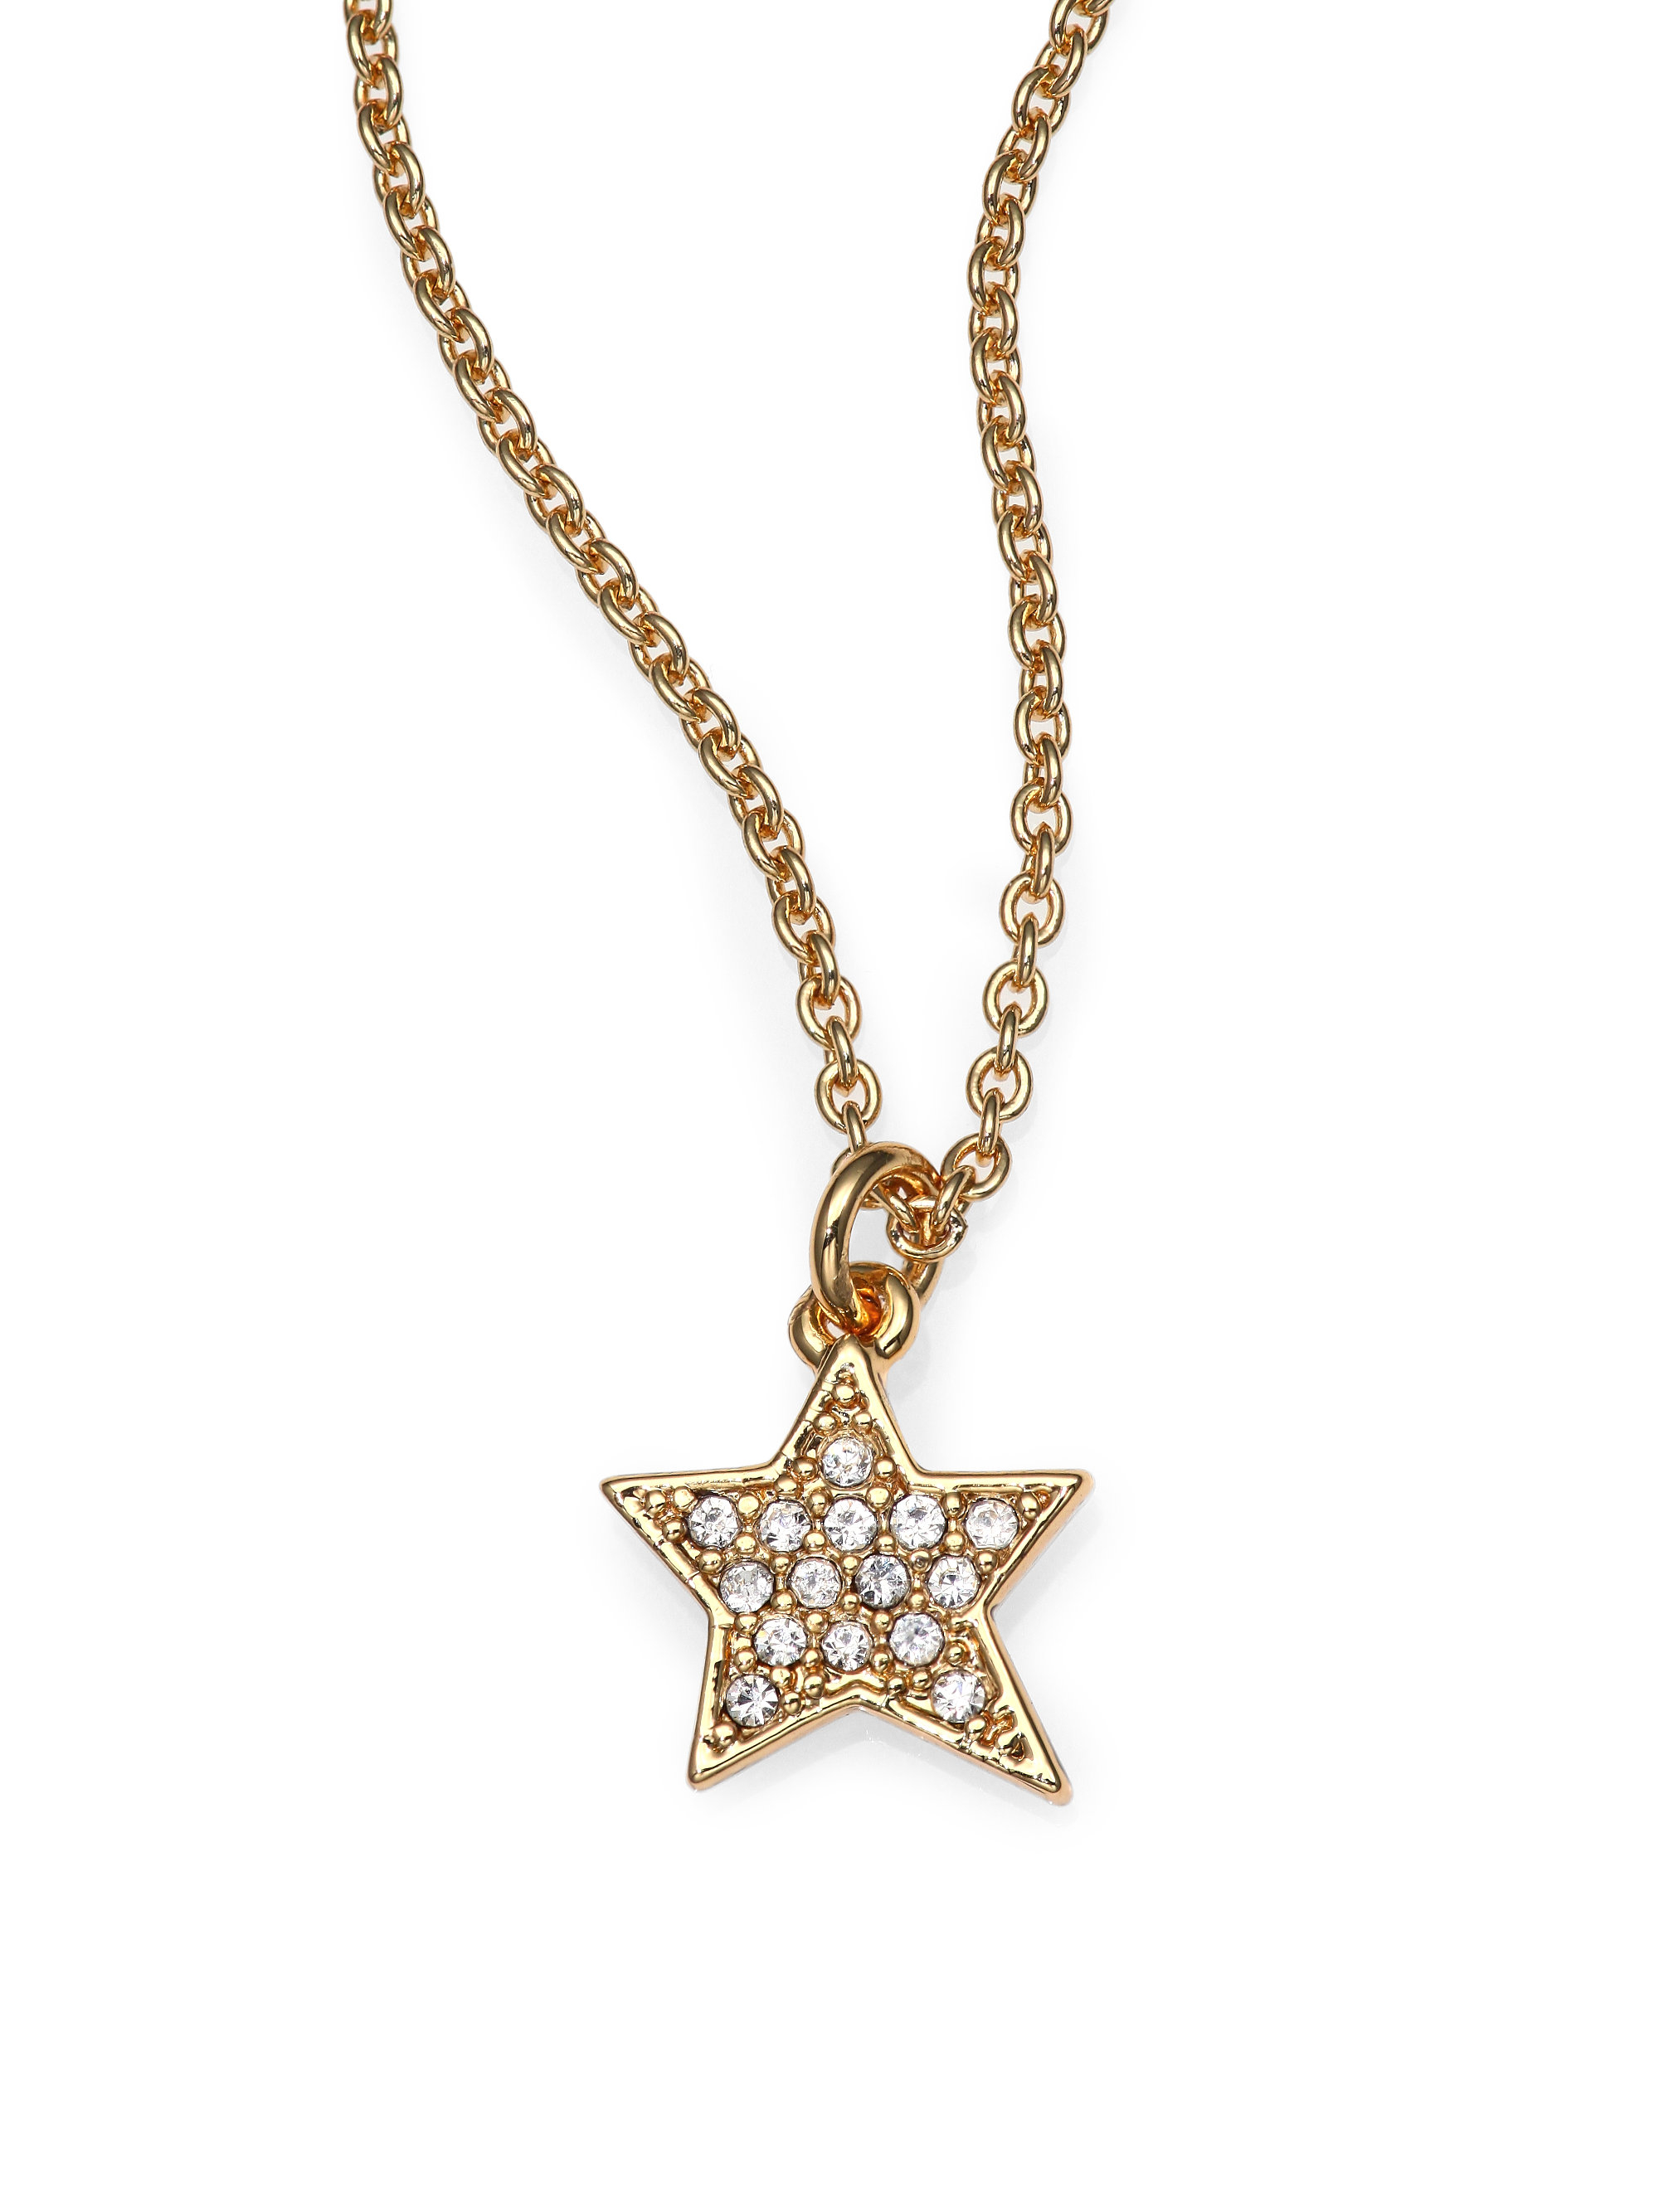 Kate spade new york Twinkle Twinkle Star Mini Pendant Necklace in